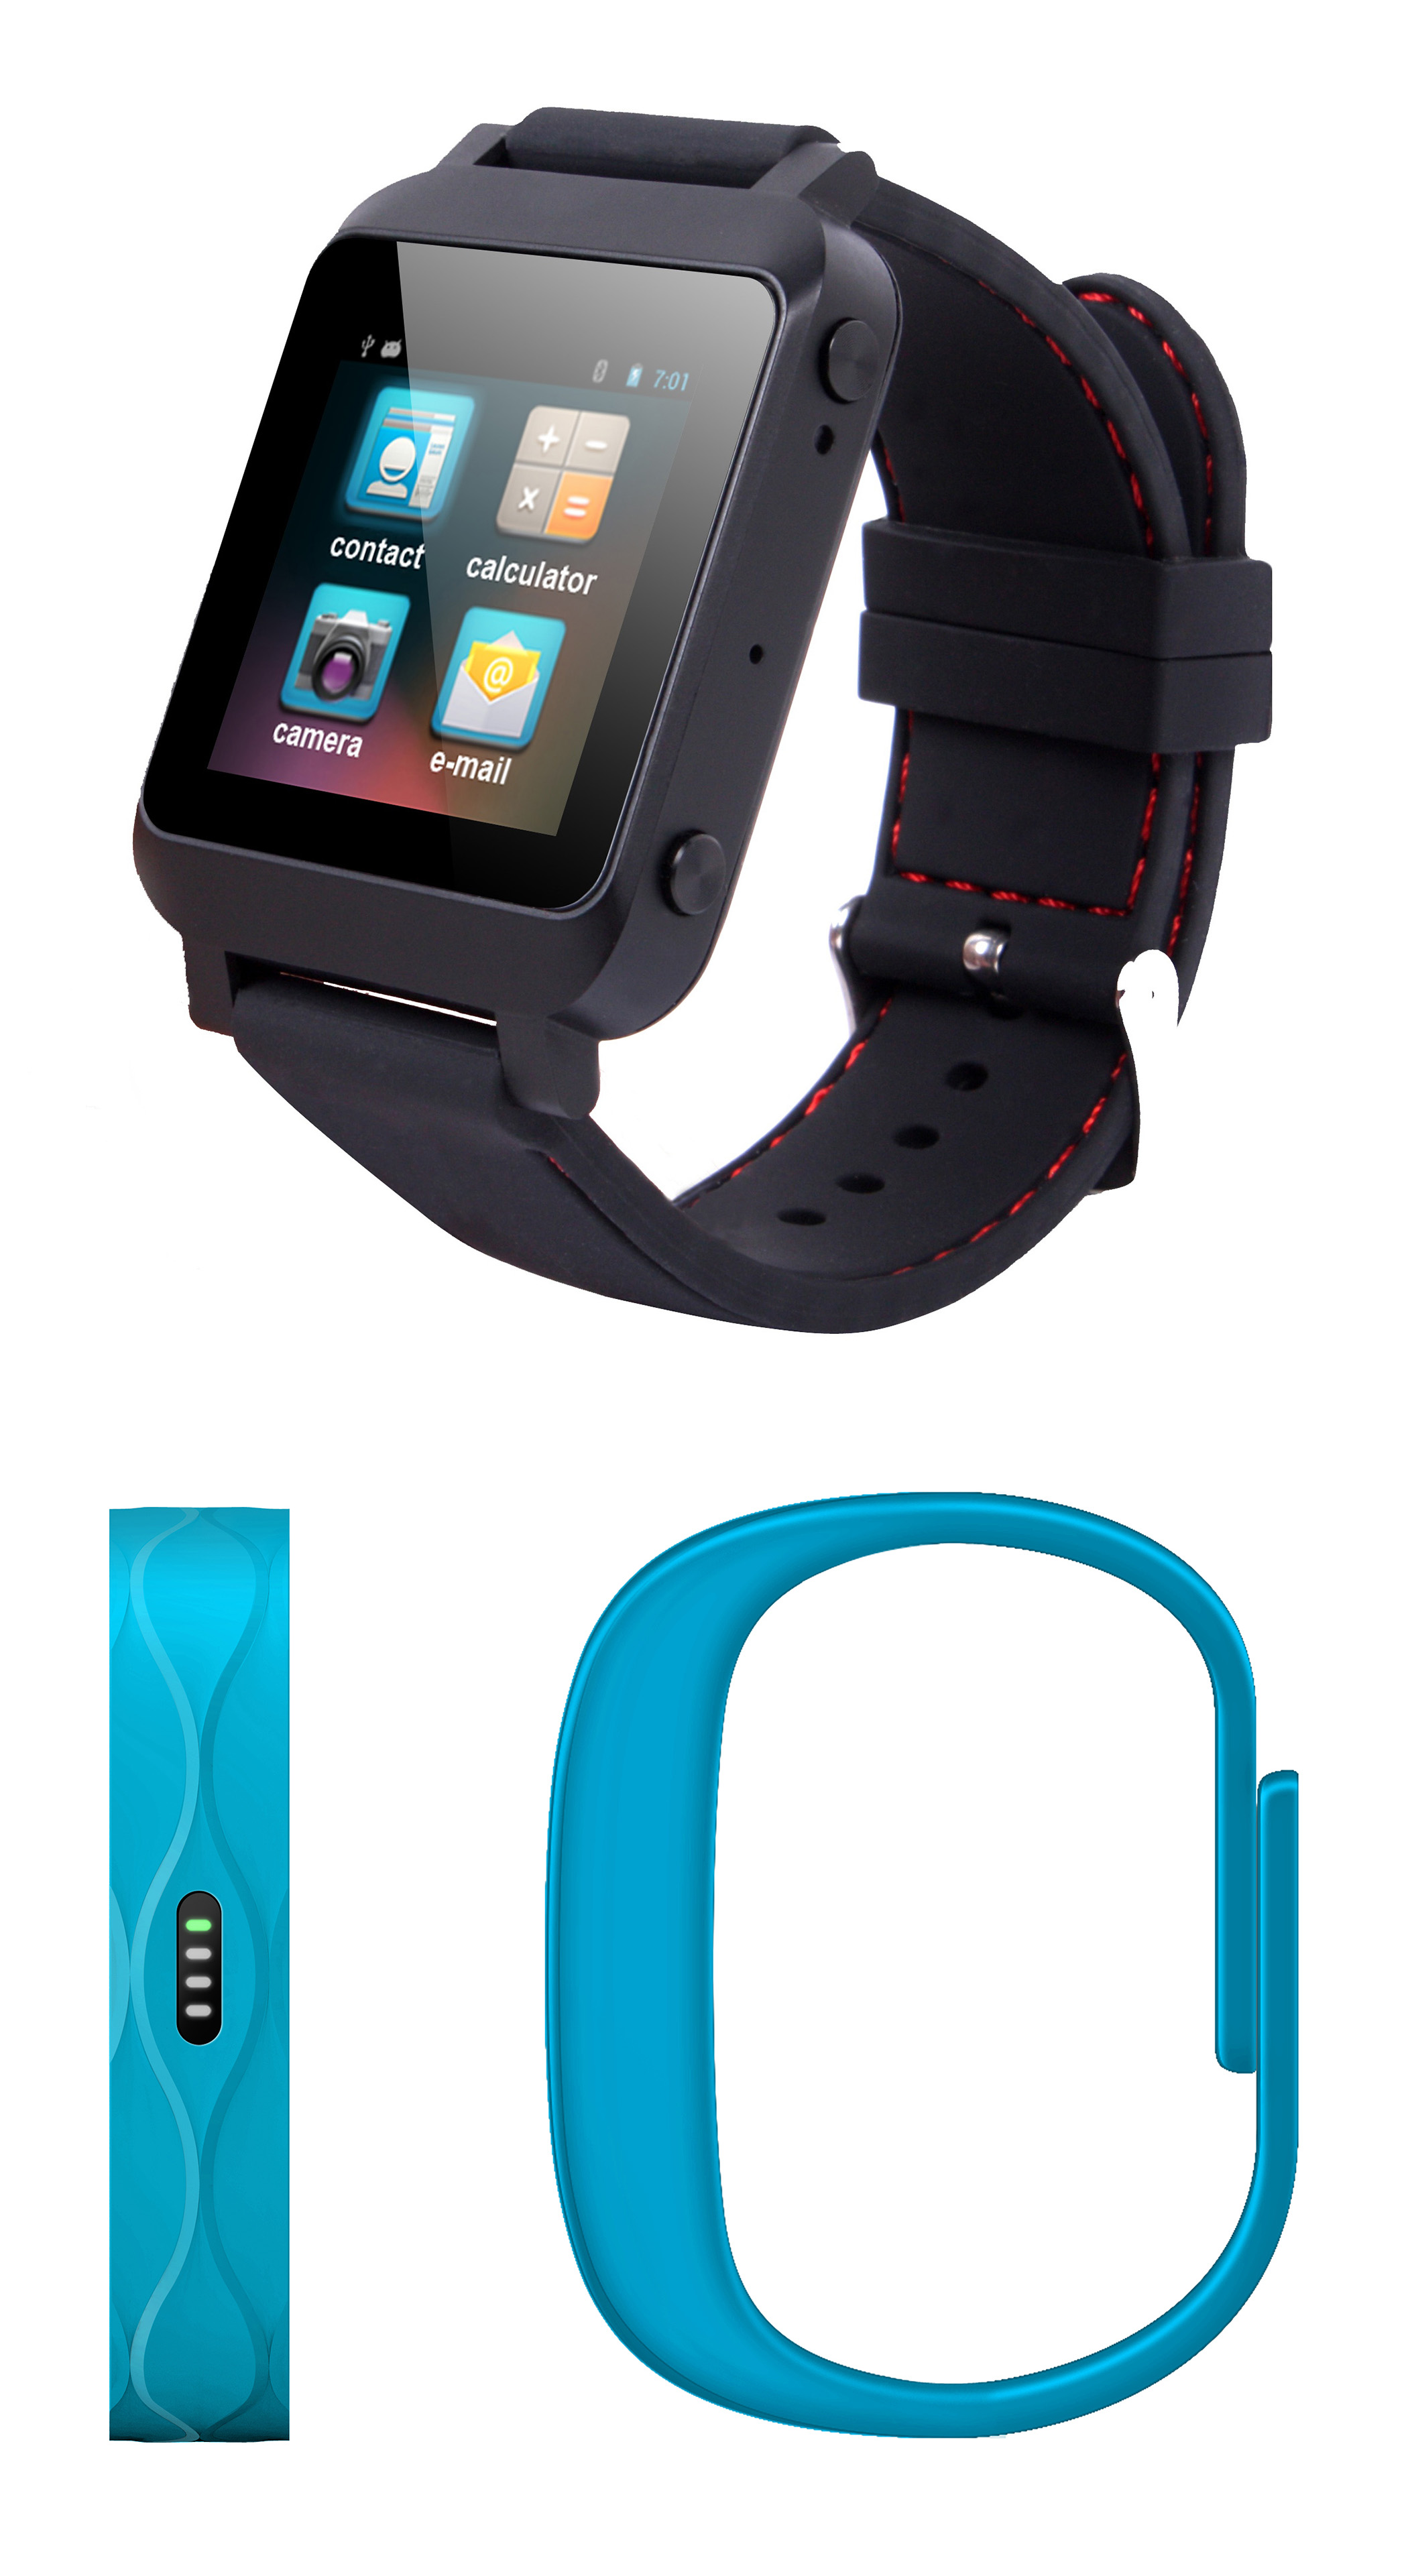 YiFang Digital NextONE smartwatch and wristband pedometer